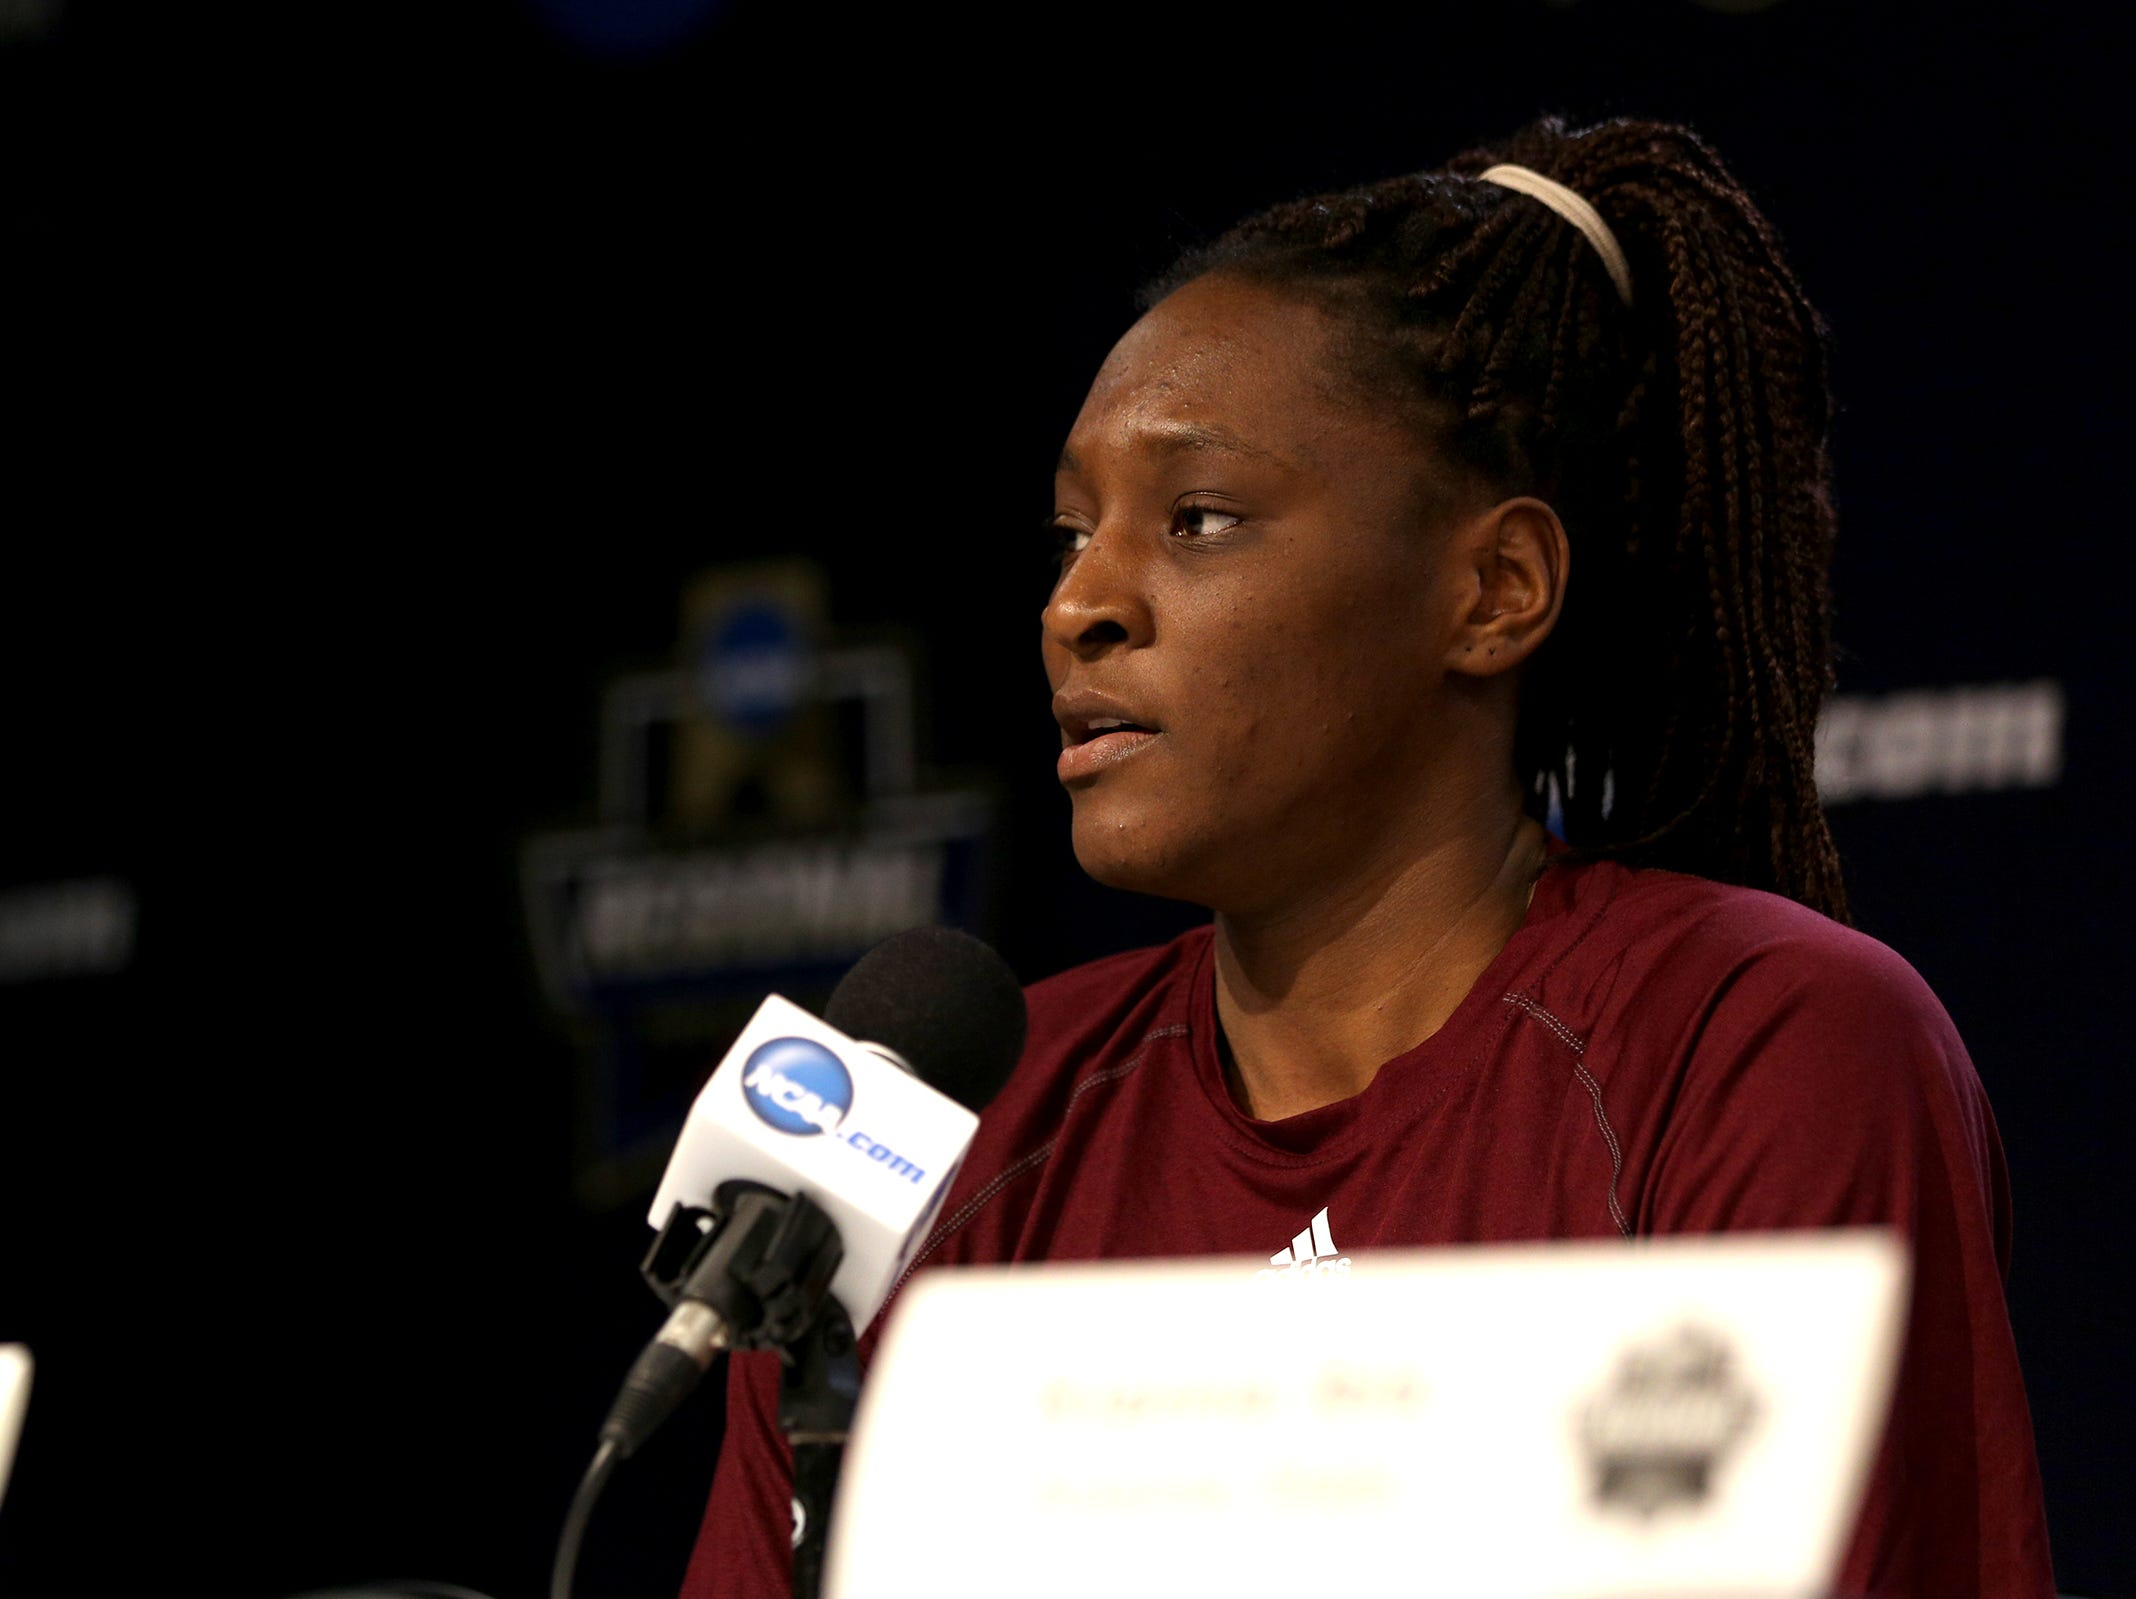 Arizona State University's forward Sophia Elenga answers questions during a press conference prior to the NCAA Women's Regional at the Moda Center in Portland on March 28, 2019.